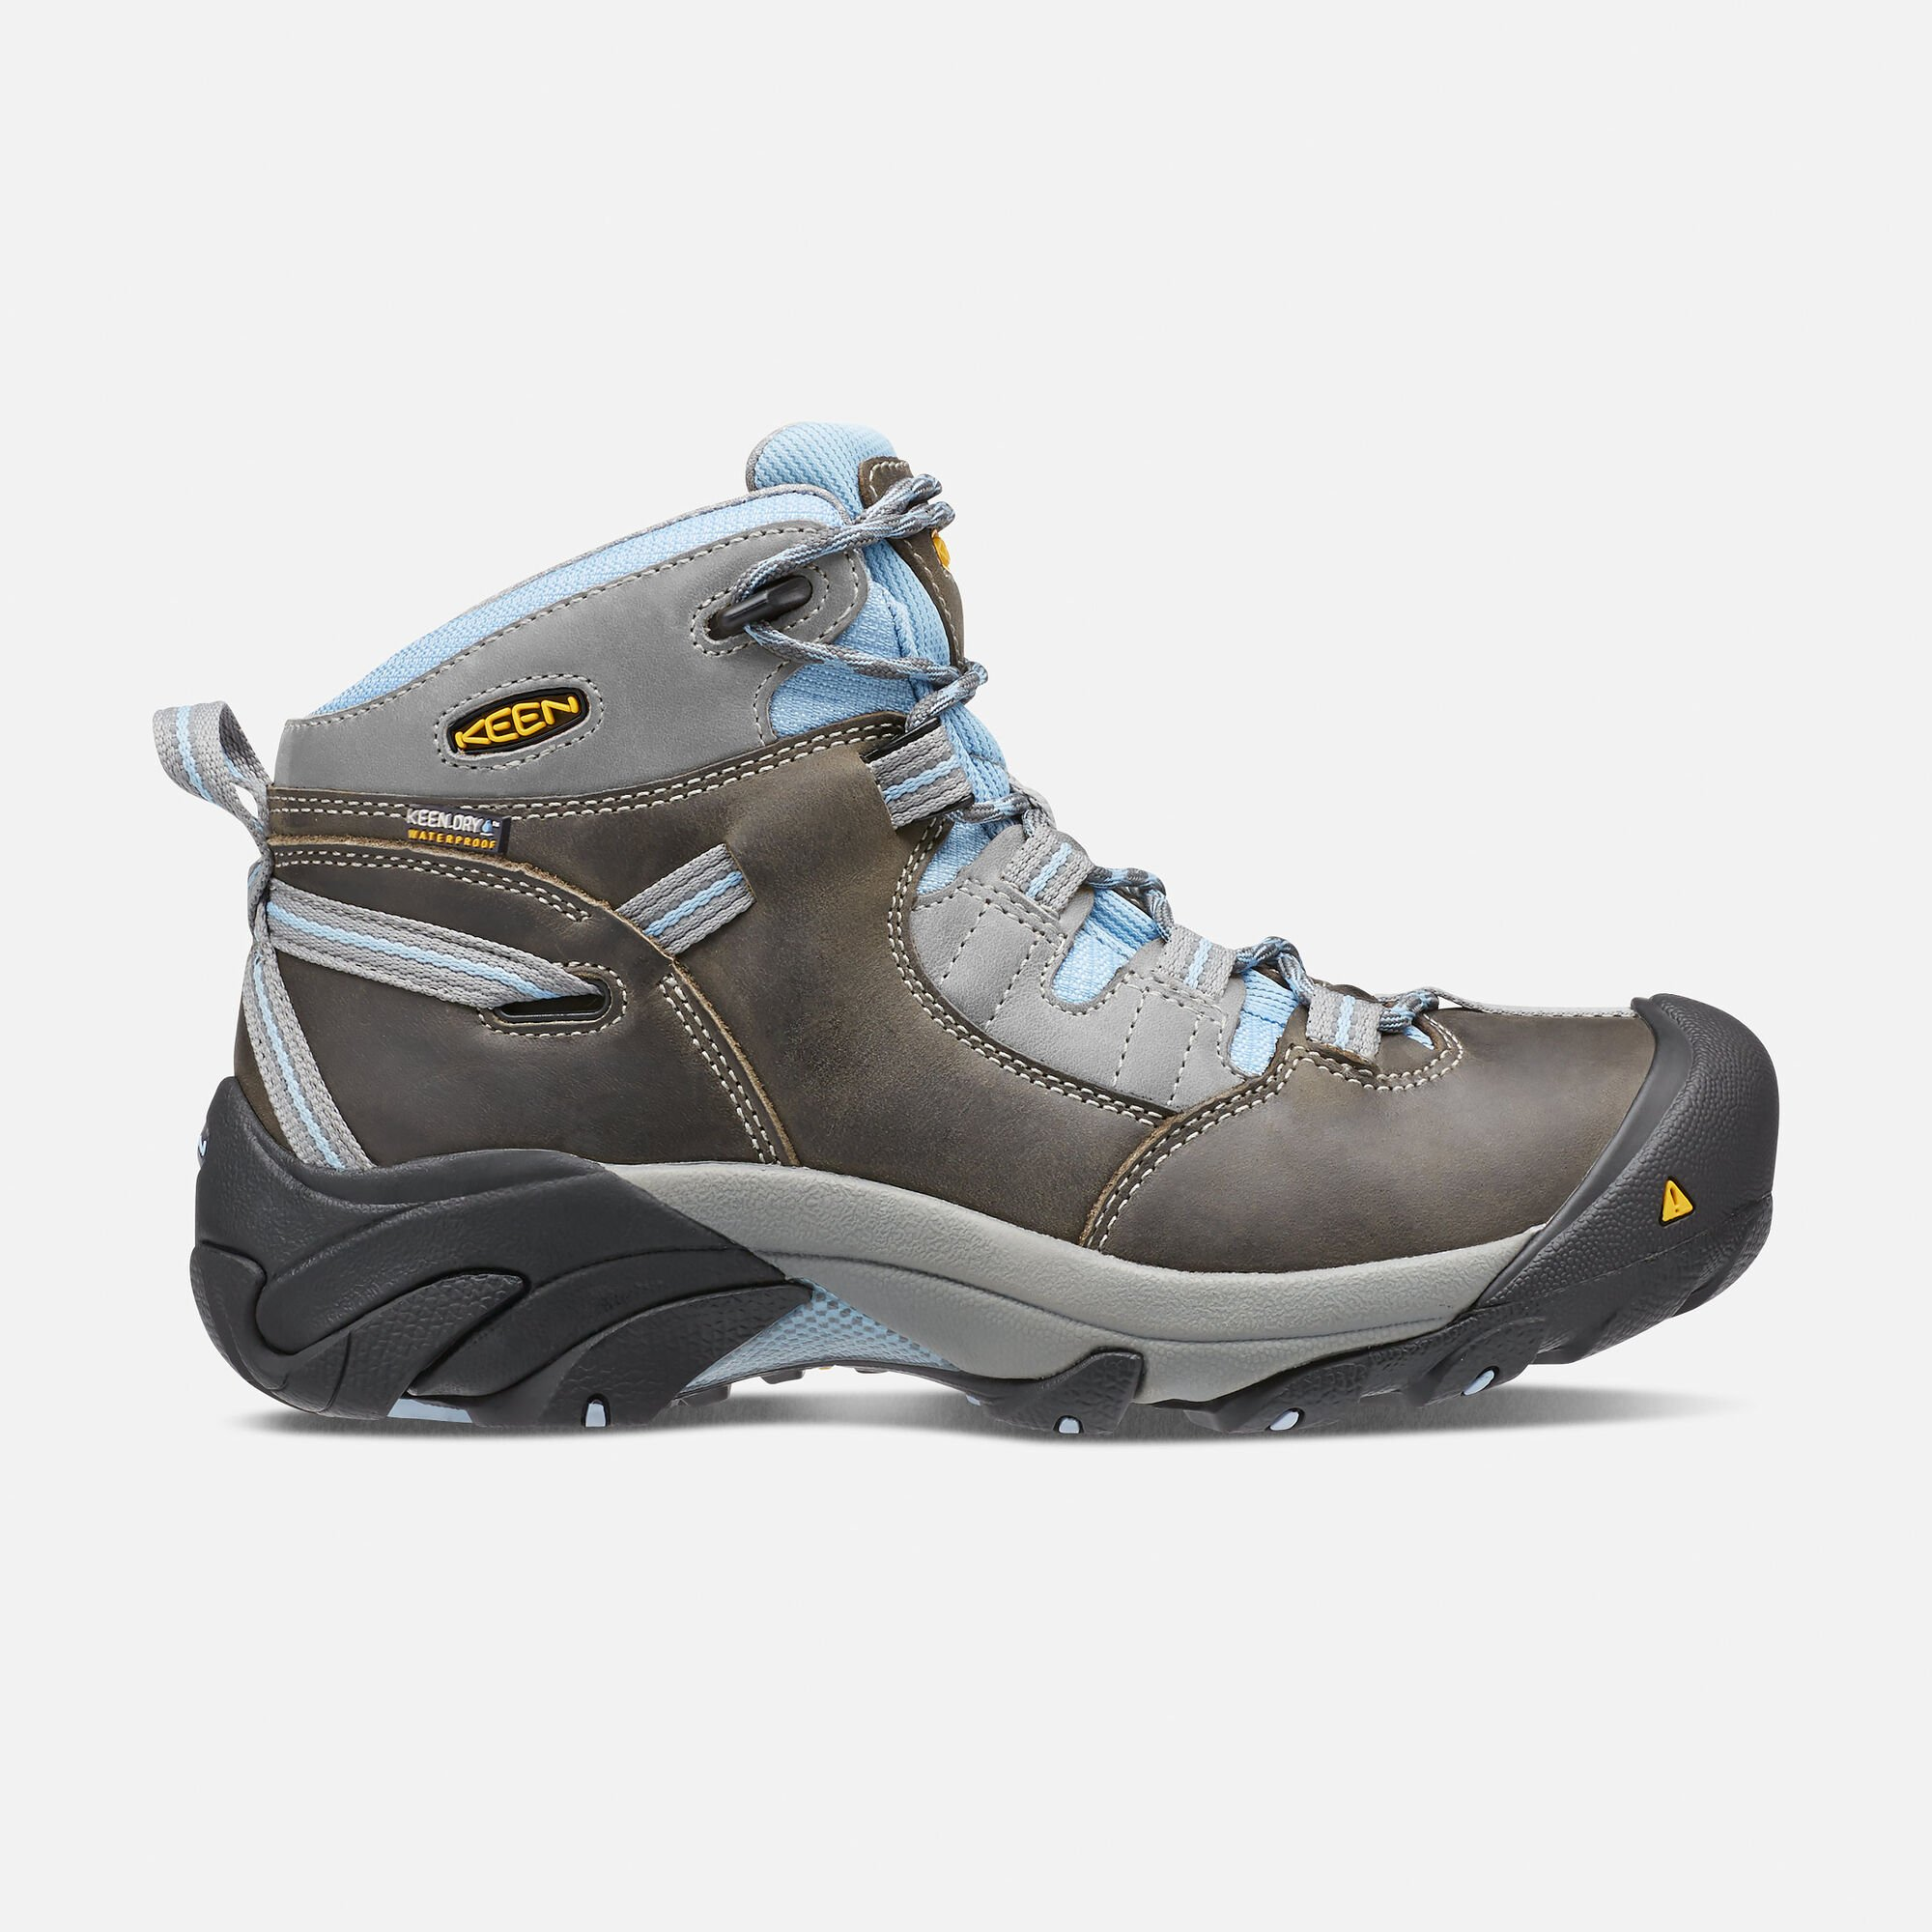 best treds boots products concrete good floors work overboots grit inchsuper traction shoes for super